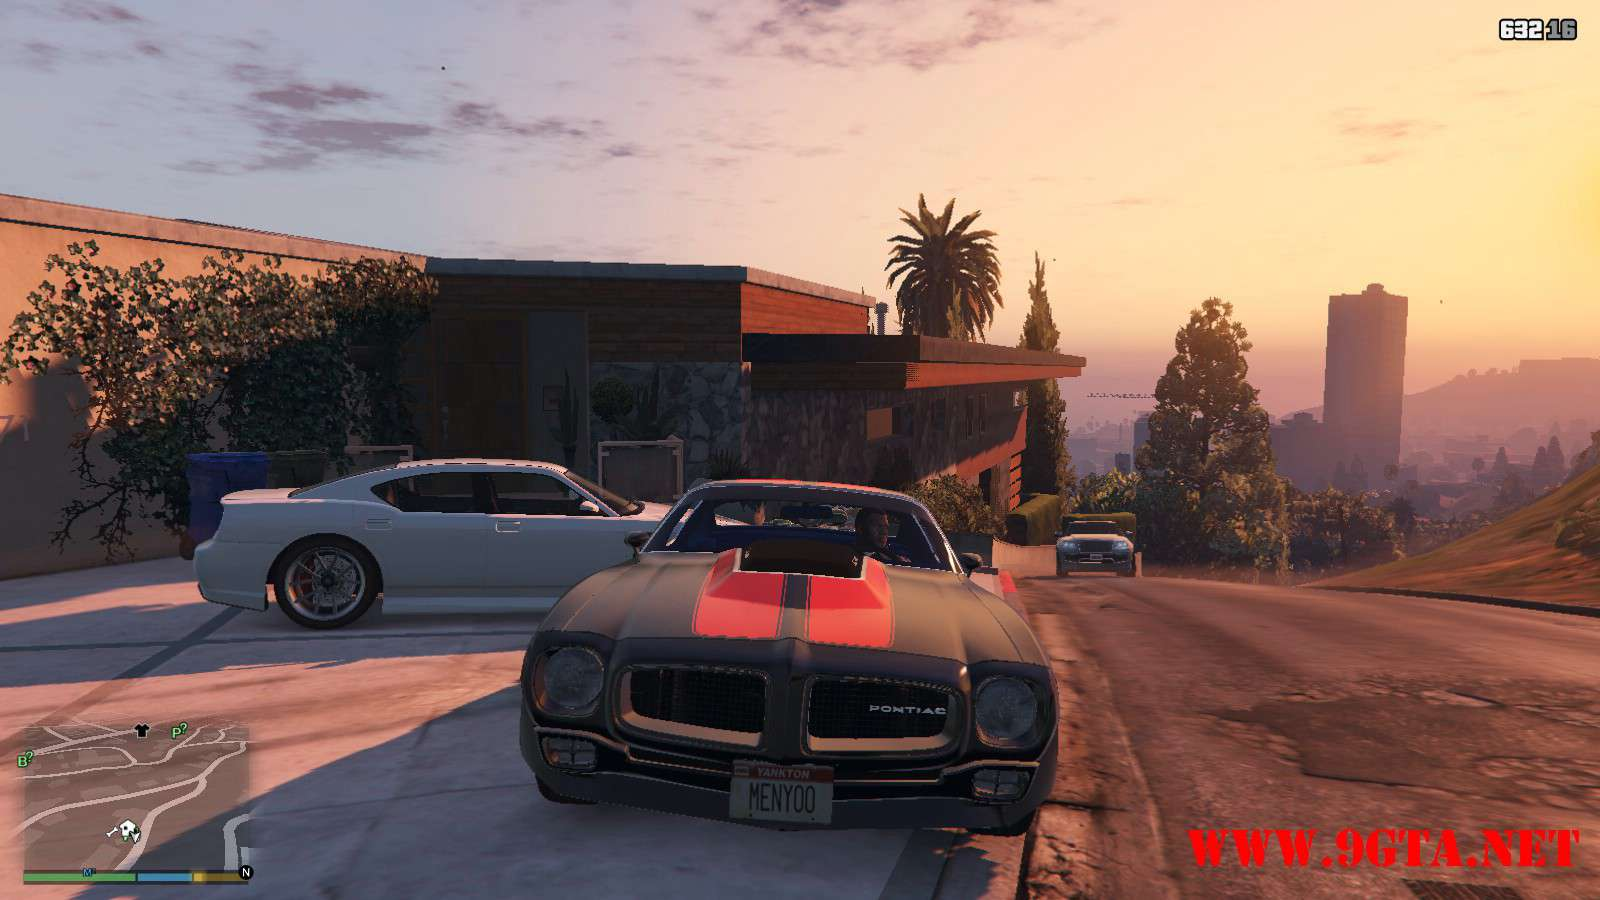 1970 Pontiac Firebird v1.0 GTA5 Mods (9)